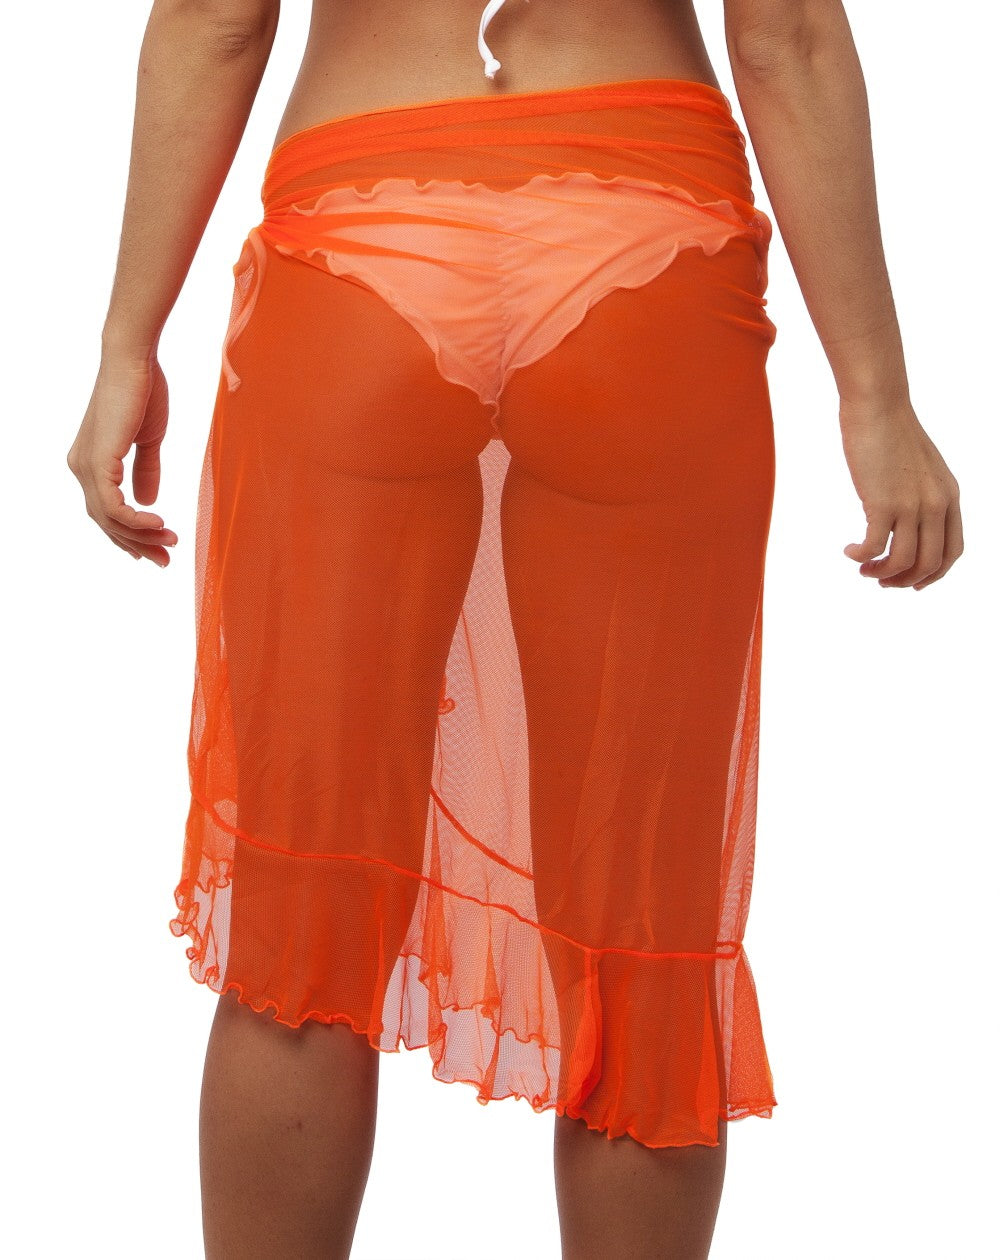 Flamenco - Orange Ultra Sheer Mesh Sarong